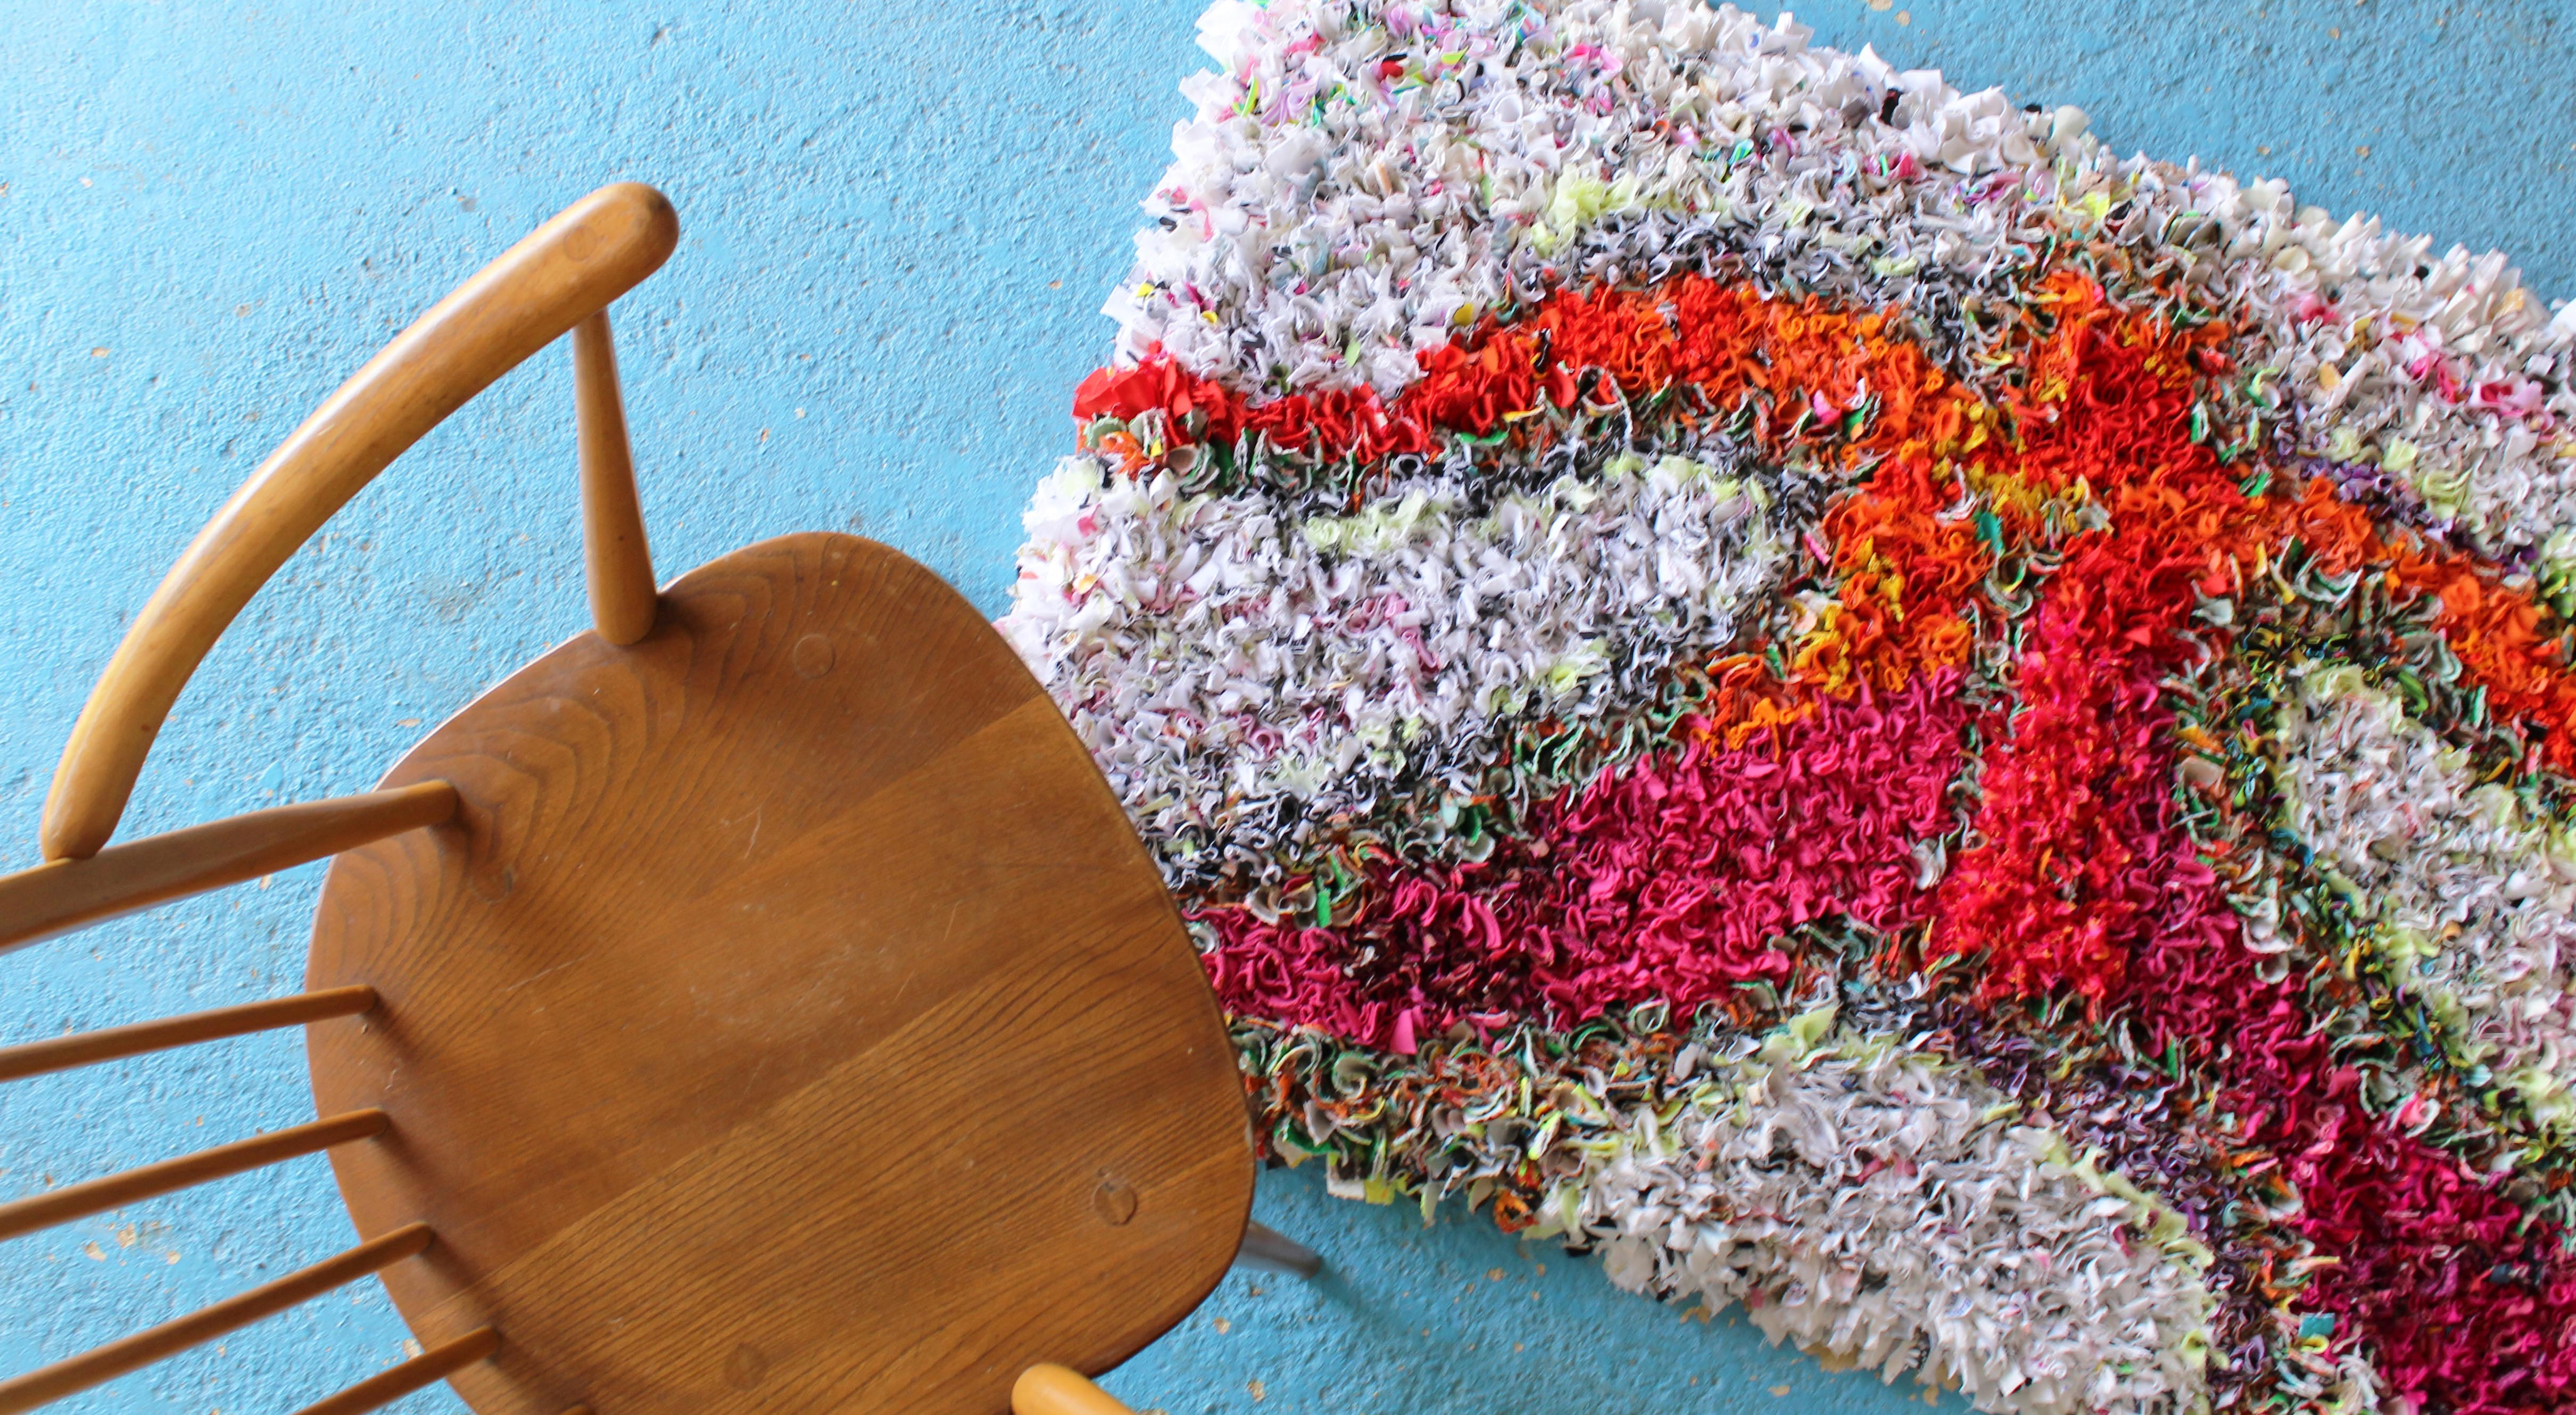 A Ragged Life rag rug on a blue floor with a wooden Ercol chair